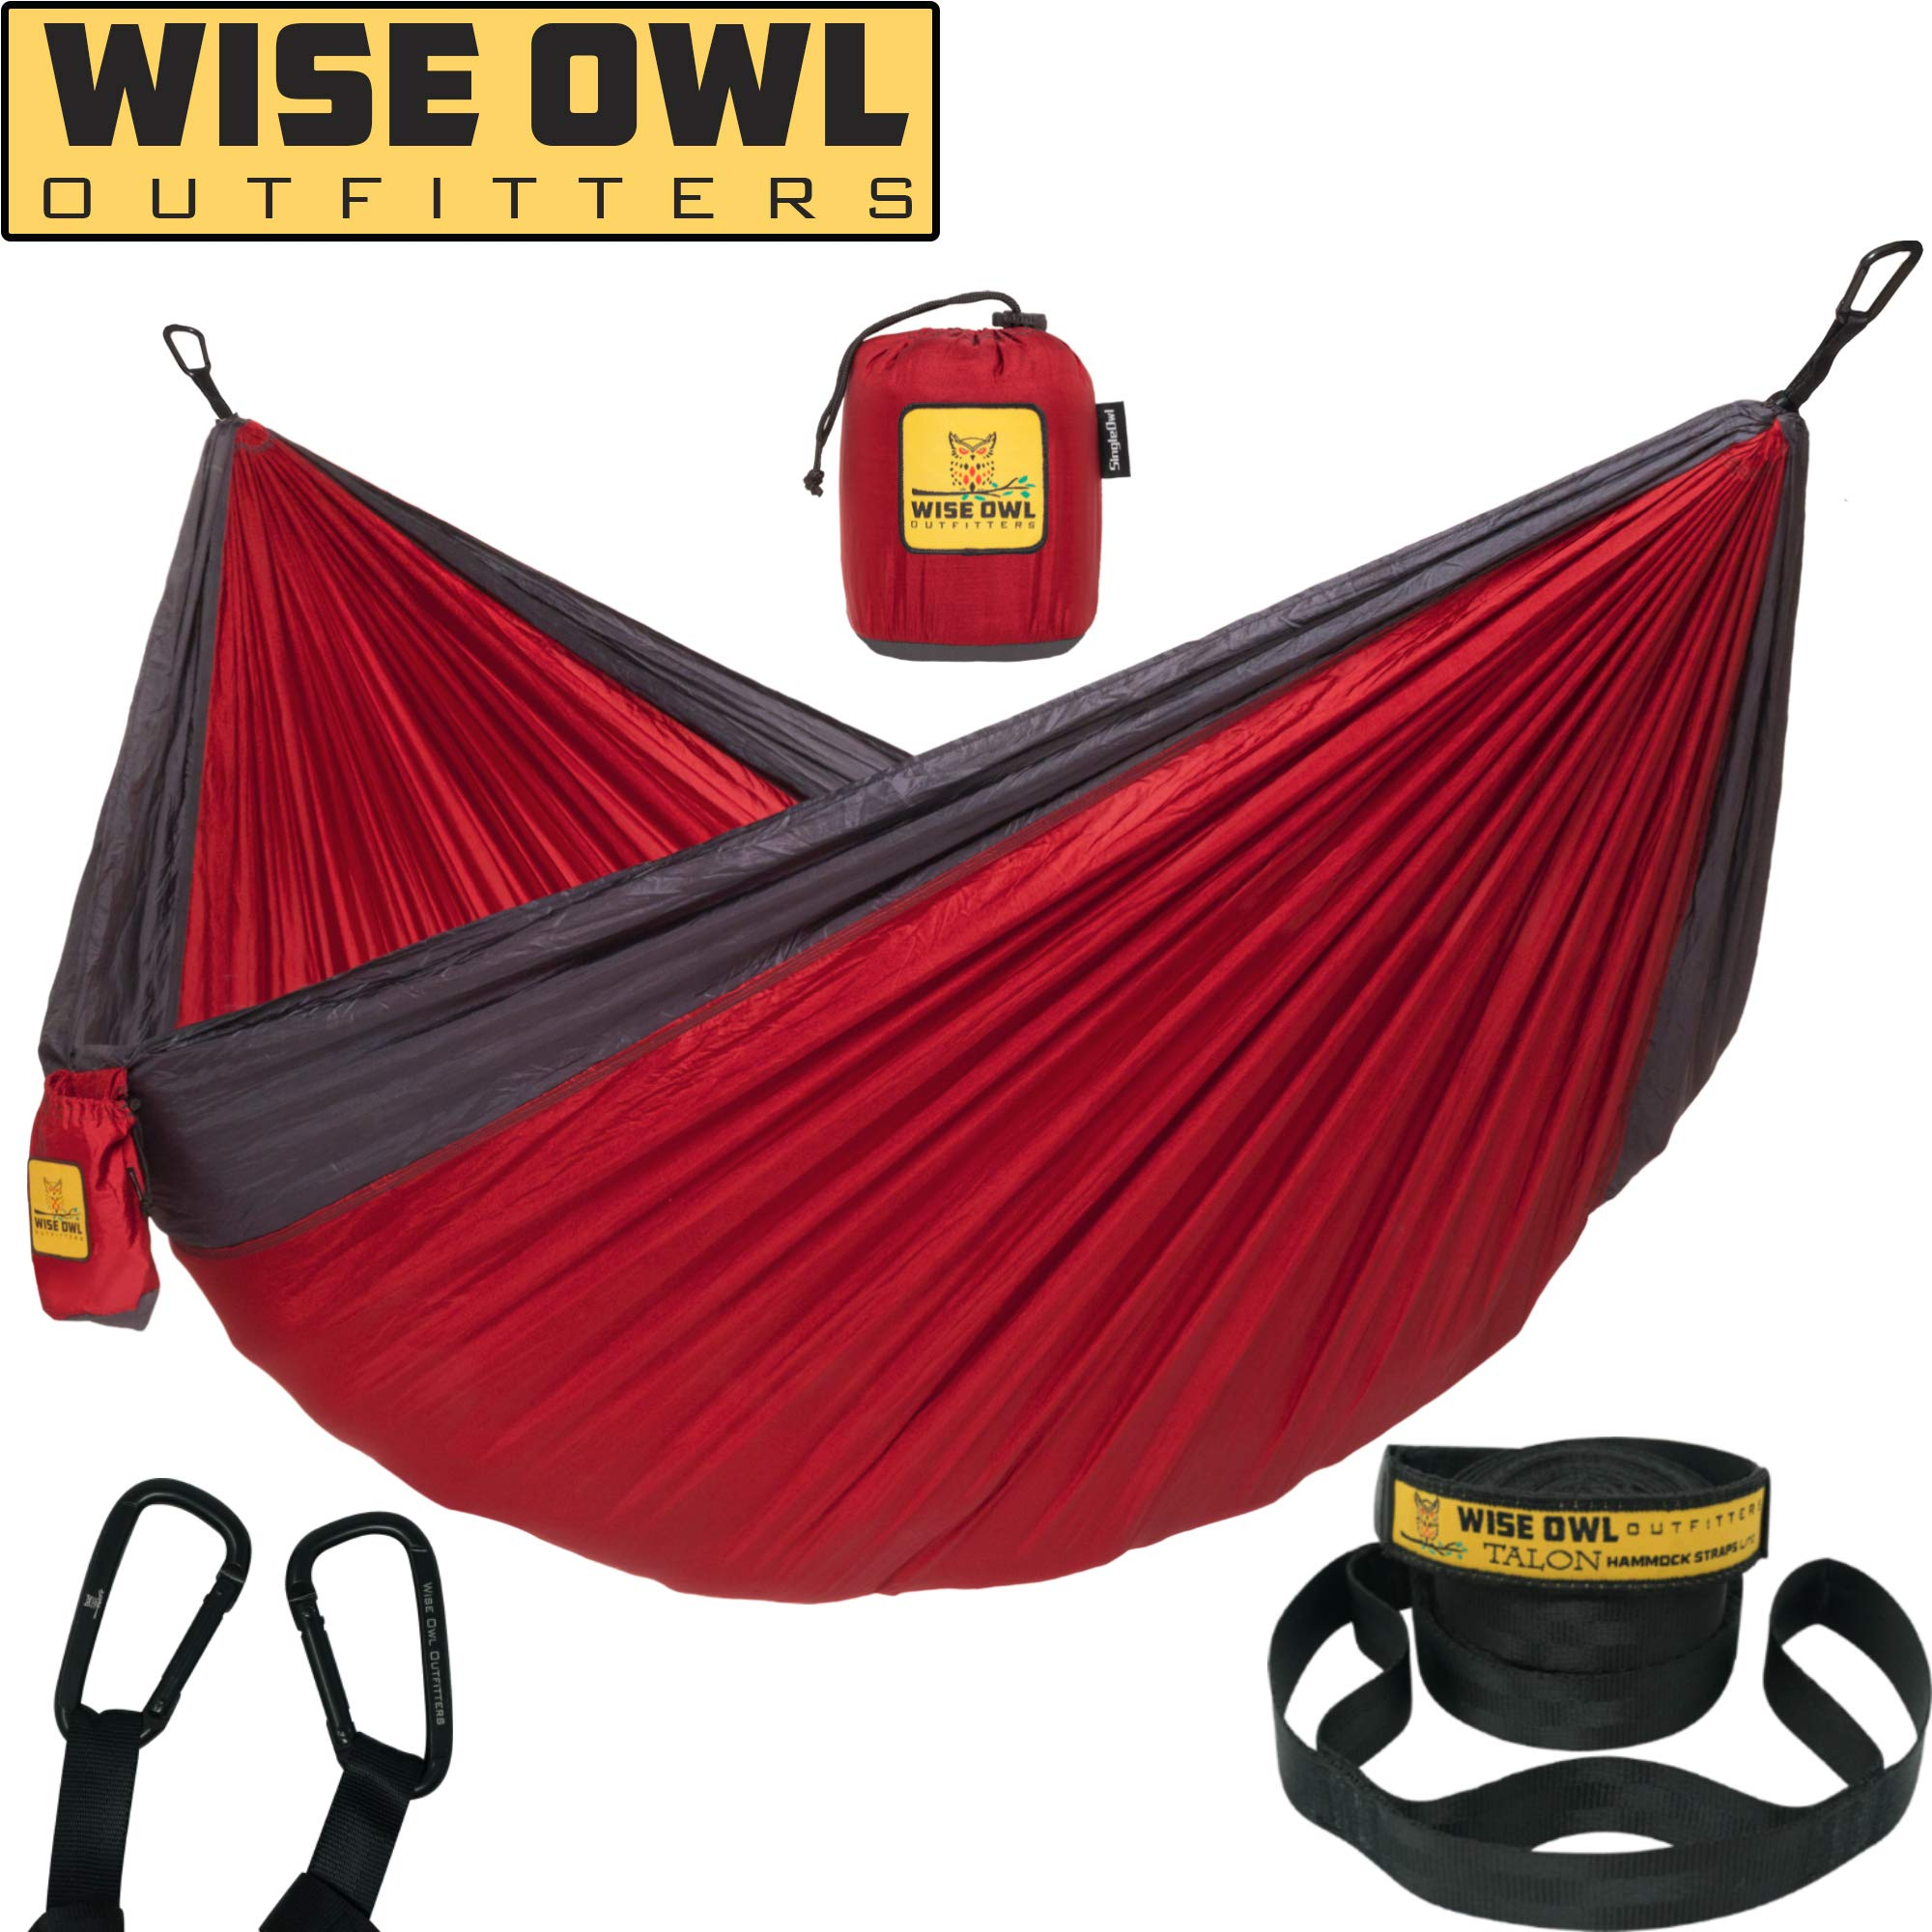 Wise Owl Outfitters Hammock Camping Double & Single with Tree Straps - USA Based Hammocks Brand Gear, Indoor Outdoor Backpacking Survival & Travel, Portable SO RedChr